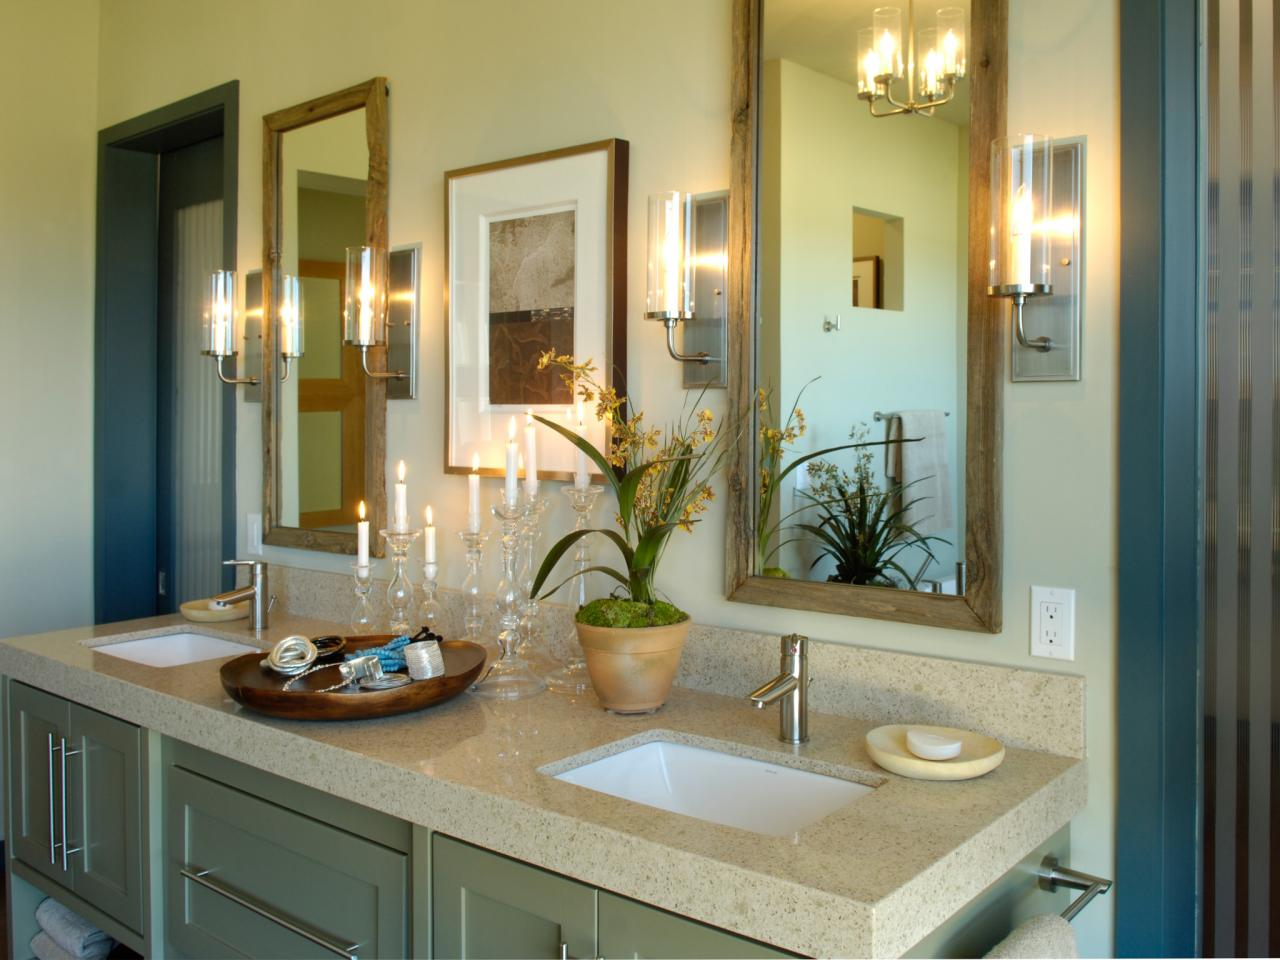 Candice Olson bathrooms plus bathroom layout ideas plus master ...